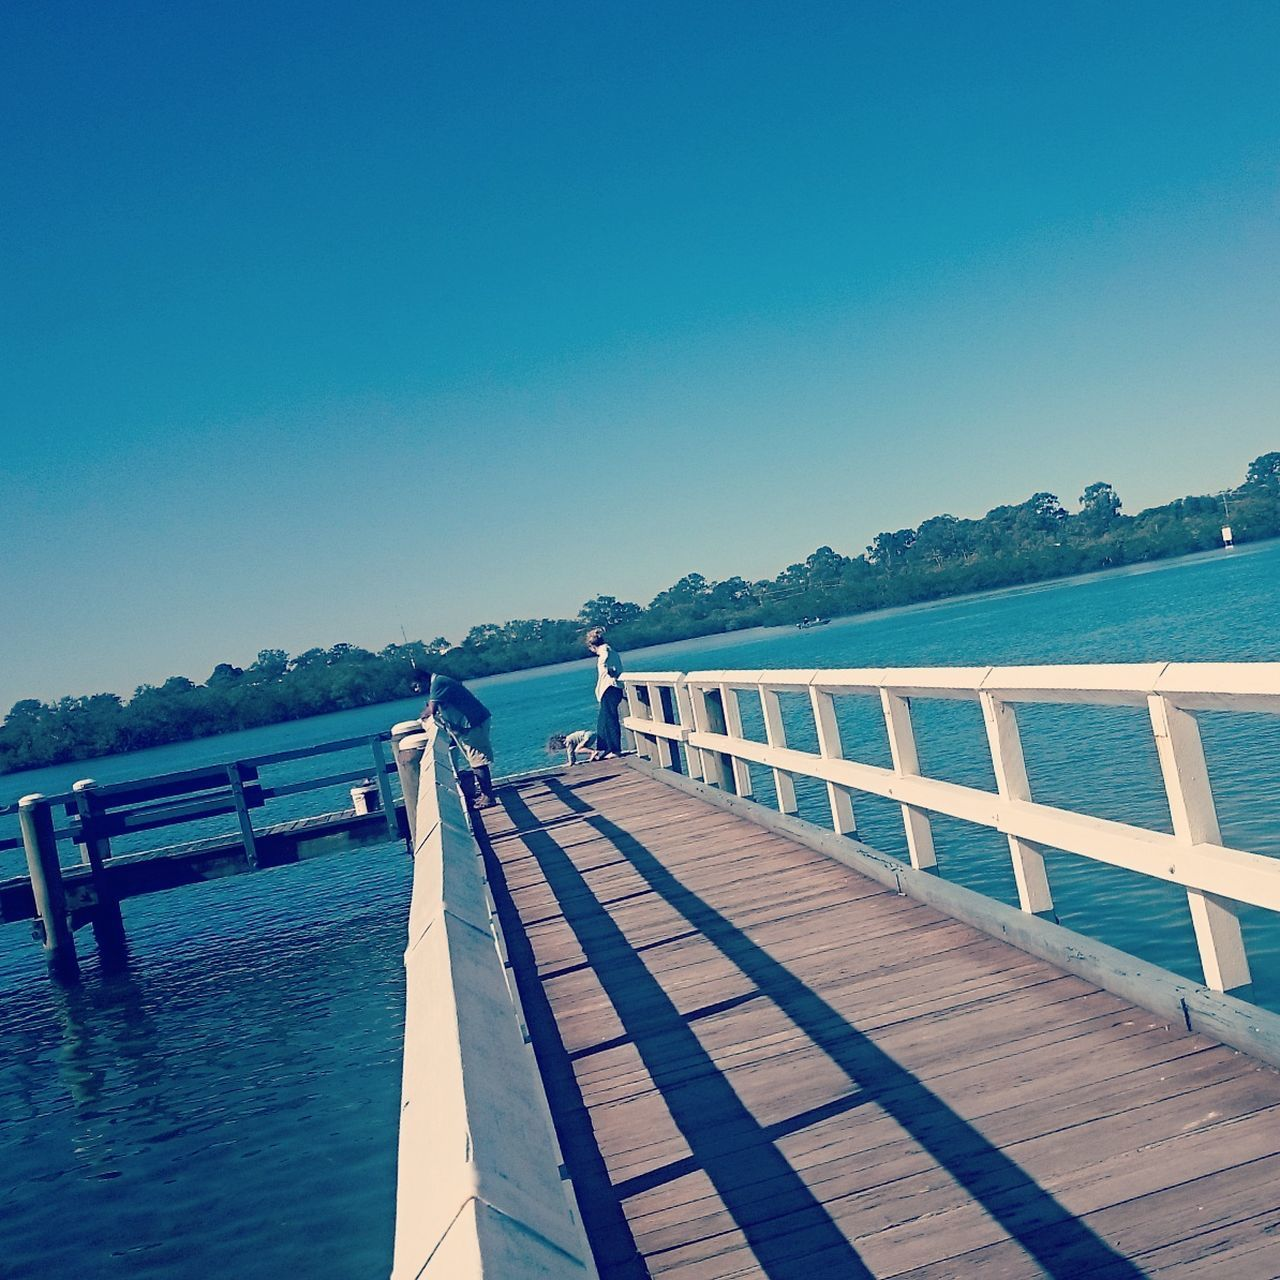 clear sky, copy space, water, sea, blue, nature, tranquil scene, sunlight, tranquility, day, scenics, outdoors, beauty in nature, mountain, wood - material, no people, sky